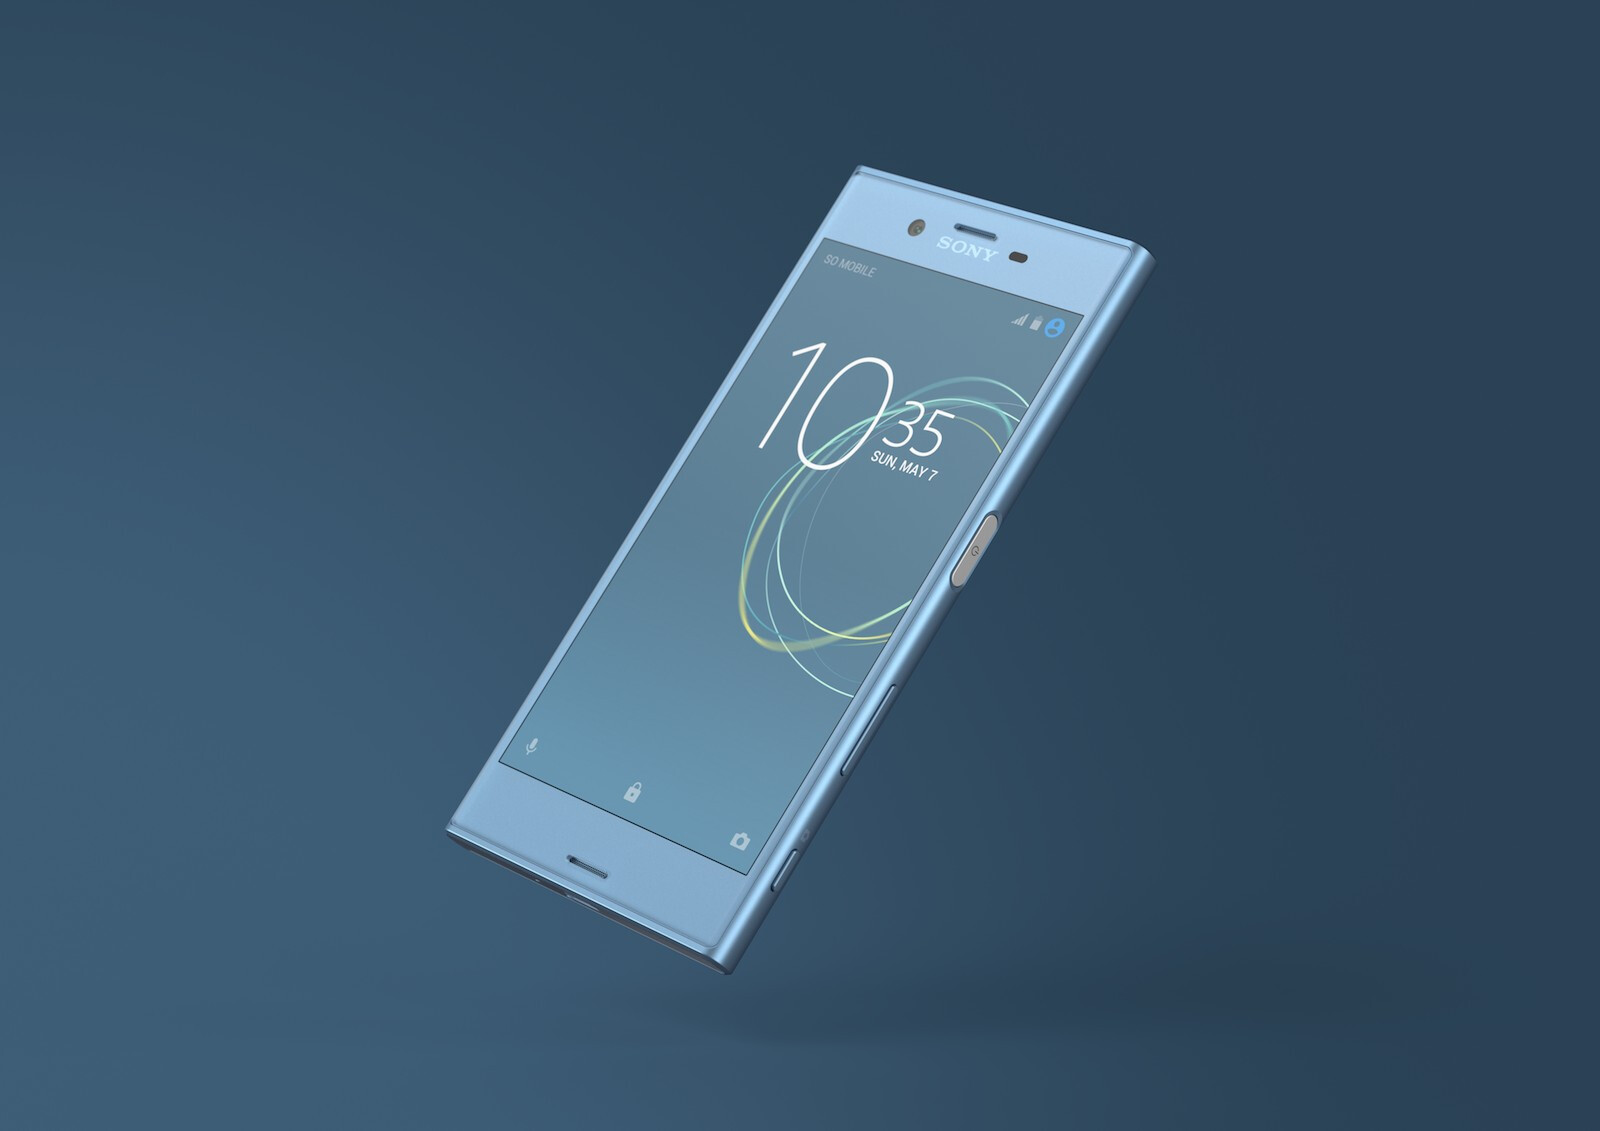 Sony Xperia XZs: all the official images